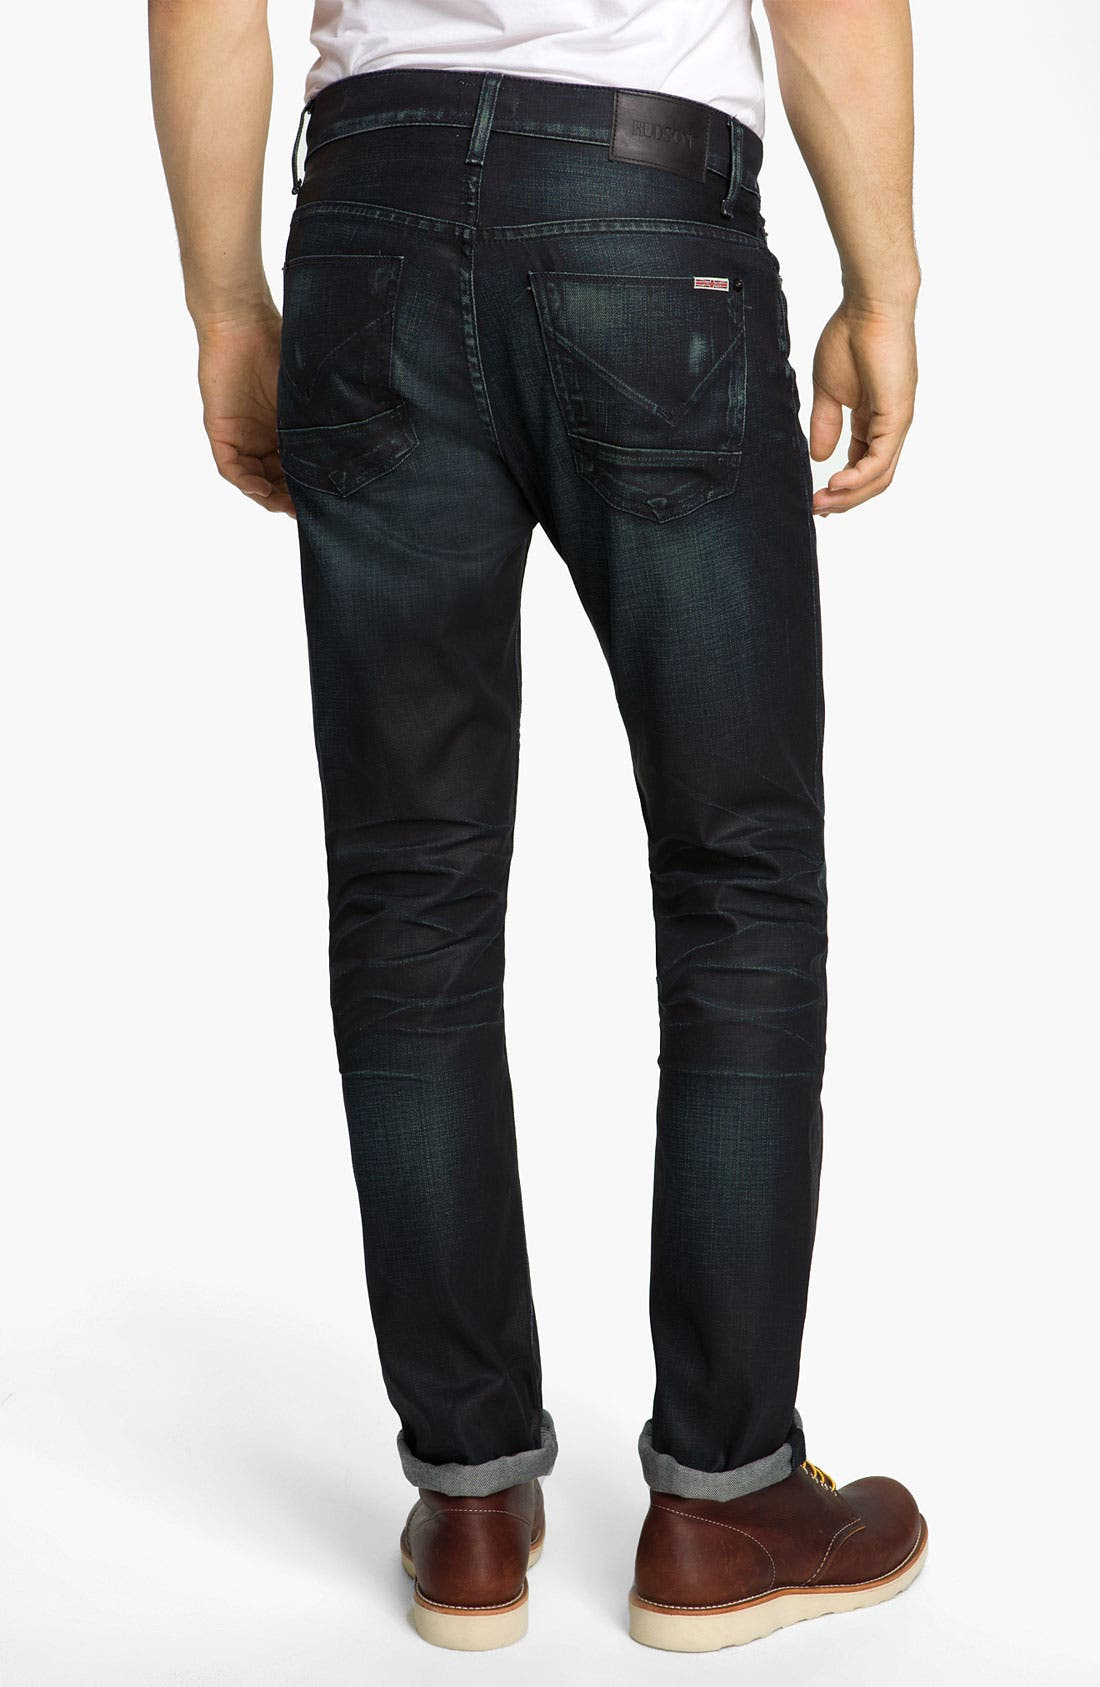 Alternate Image 1 Selected - Hudson Jeans 'Dandy' Slouchy Straight Leg Jeans (Solitaire)